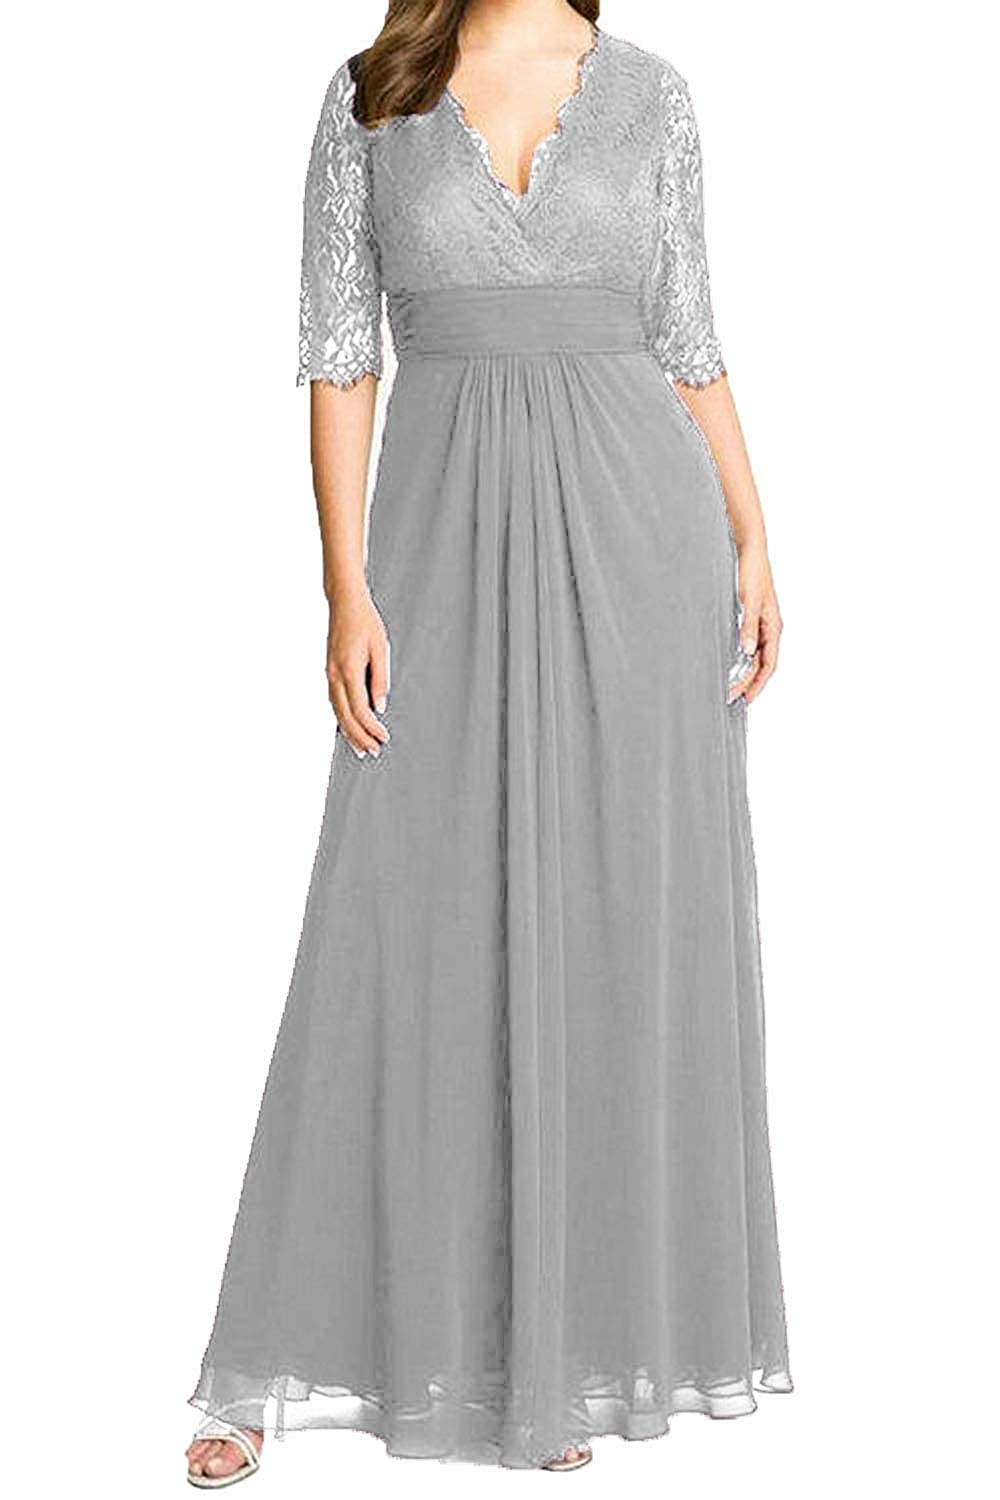 b22ef095757 RONGKIM Women s V Neck Lace Chiffon Mother of The Bride Dress Long Evening  Dresses with Sleeves at Amazon Women s Clothing store